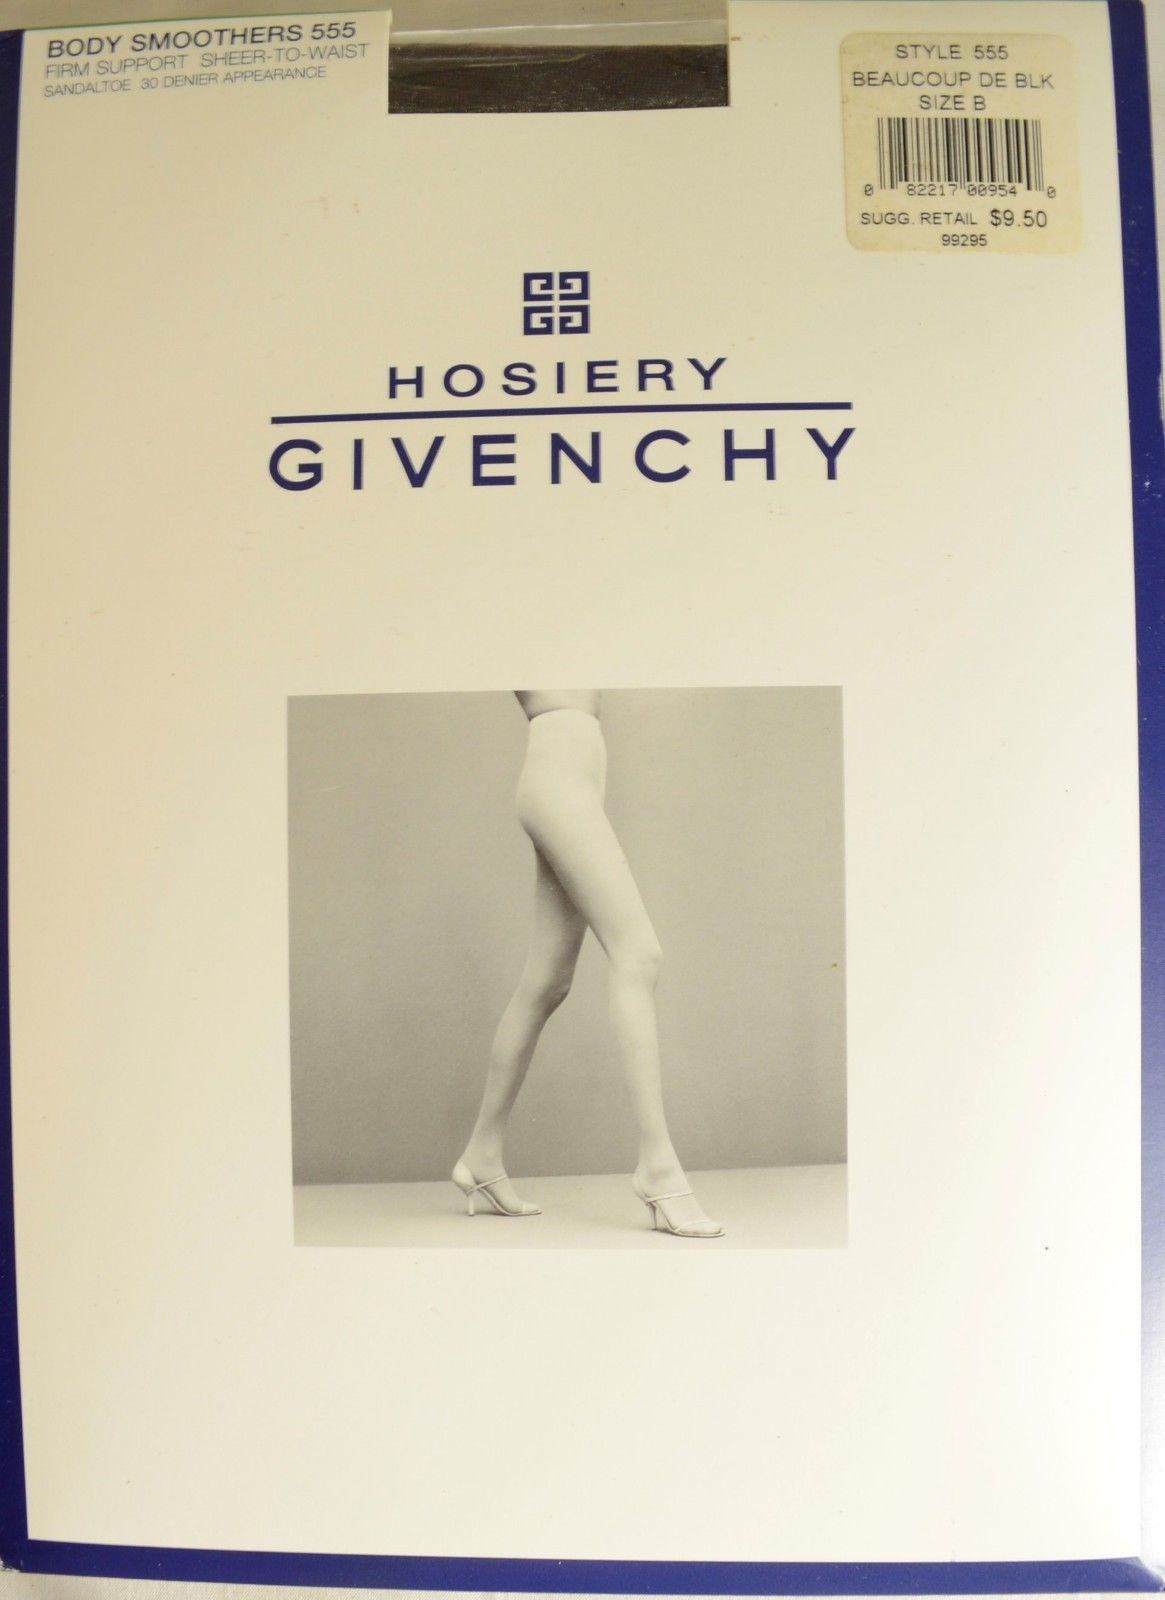 Givenchy hosiery B NIB Body Smoothers Firm Support sandal toe sheer to waist .